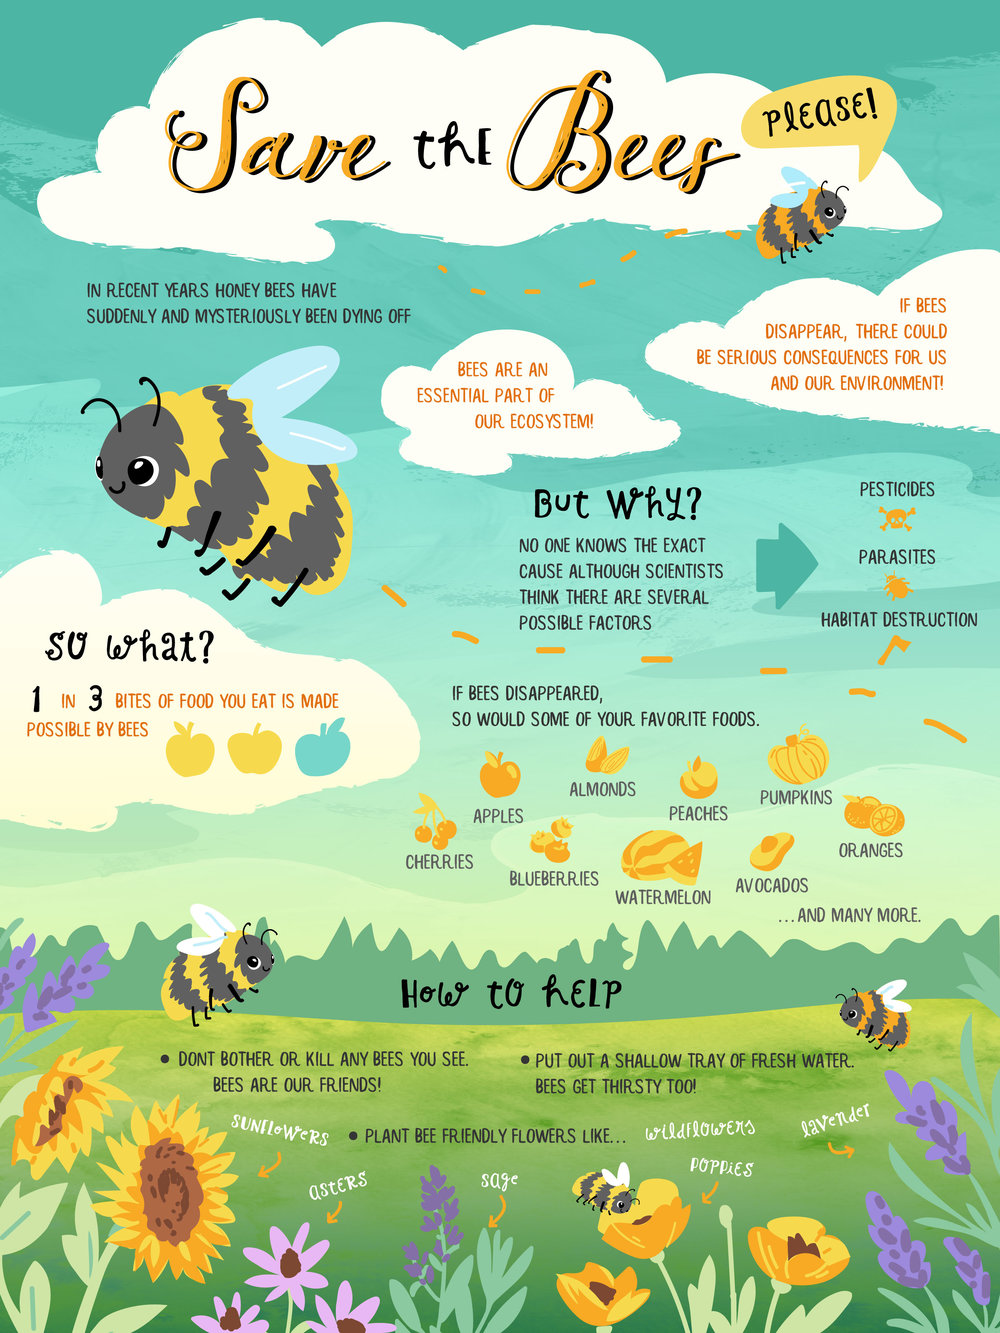 save the bees infographic-poster format1-01.jpg